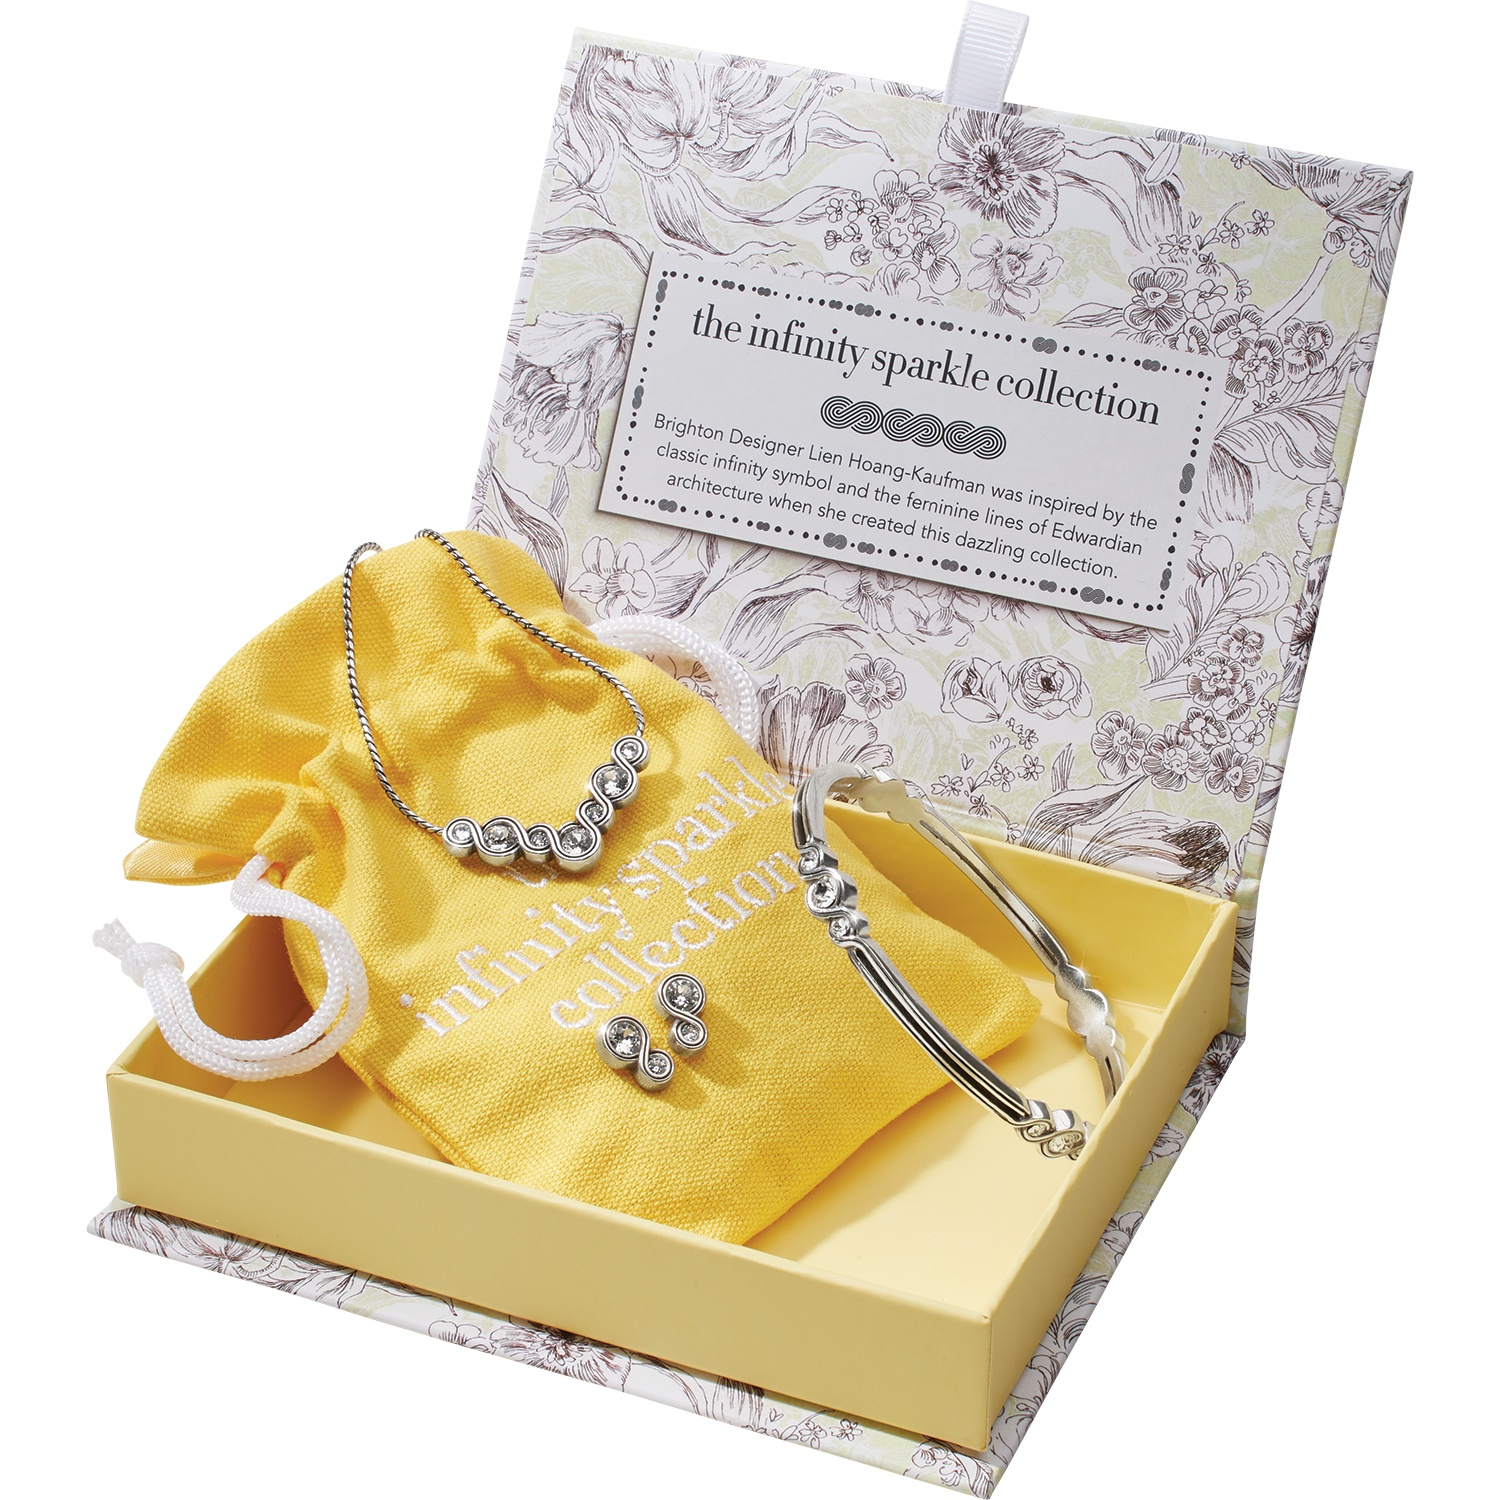 Gifts From The Heart Forever And Ever - Infinity Sparkle Collection Box Sets | Tuggl